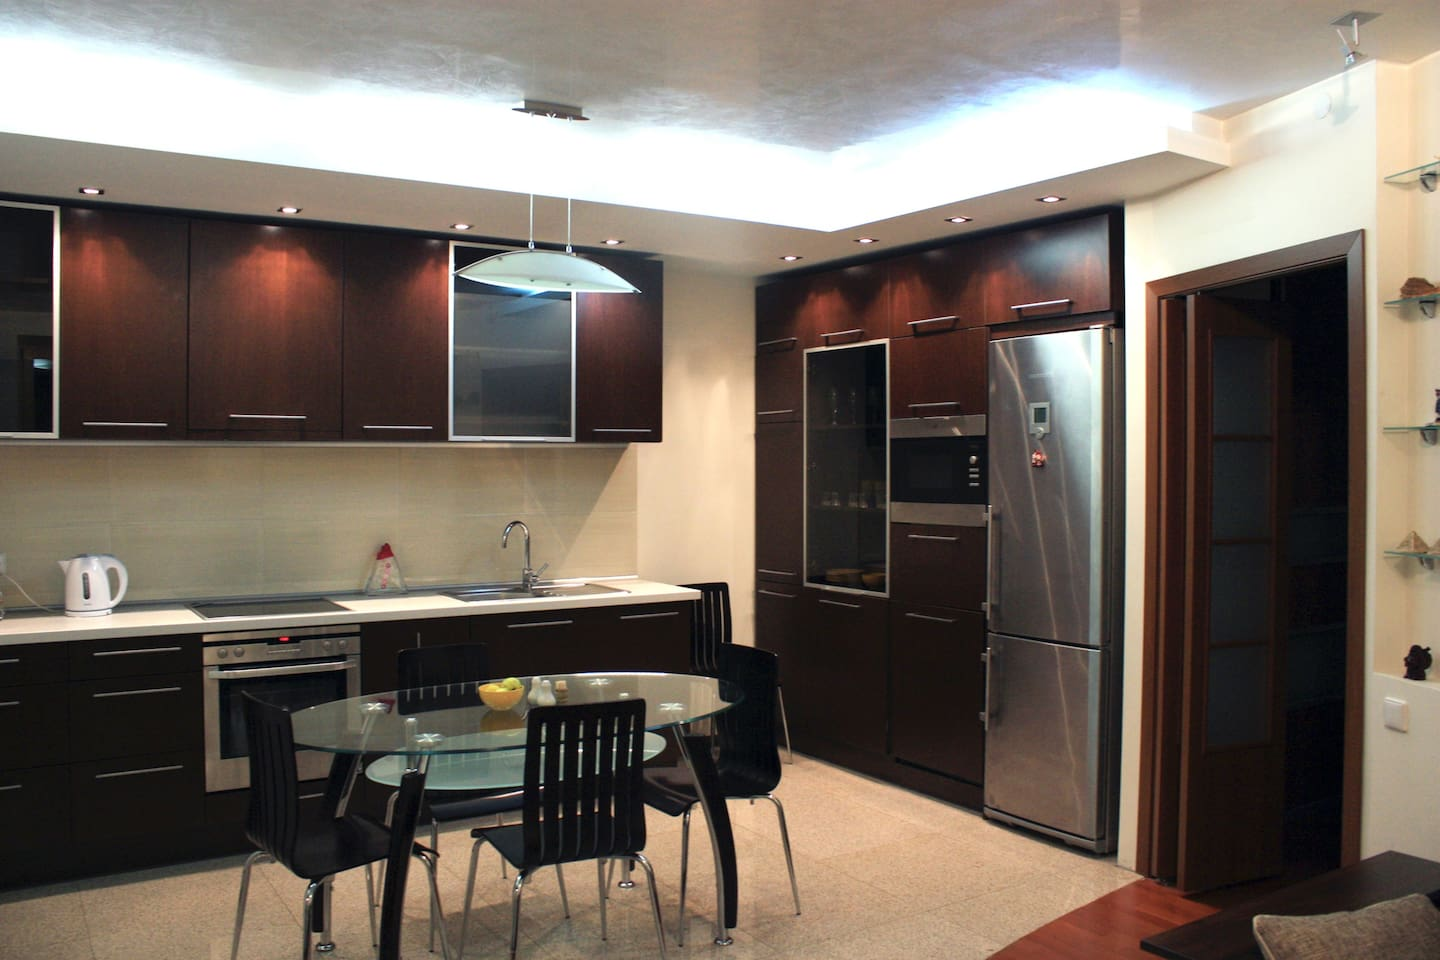 Fully equipped kitchen: cooking plates, oven, kettle,  microwave oven, dishwasher, washing machine, huge fridge